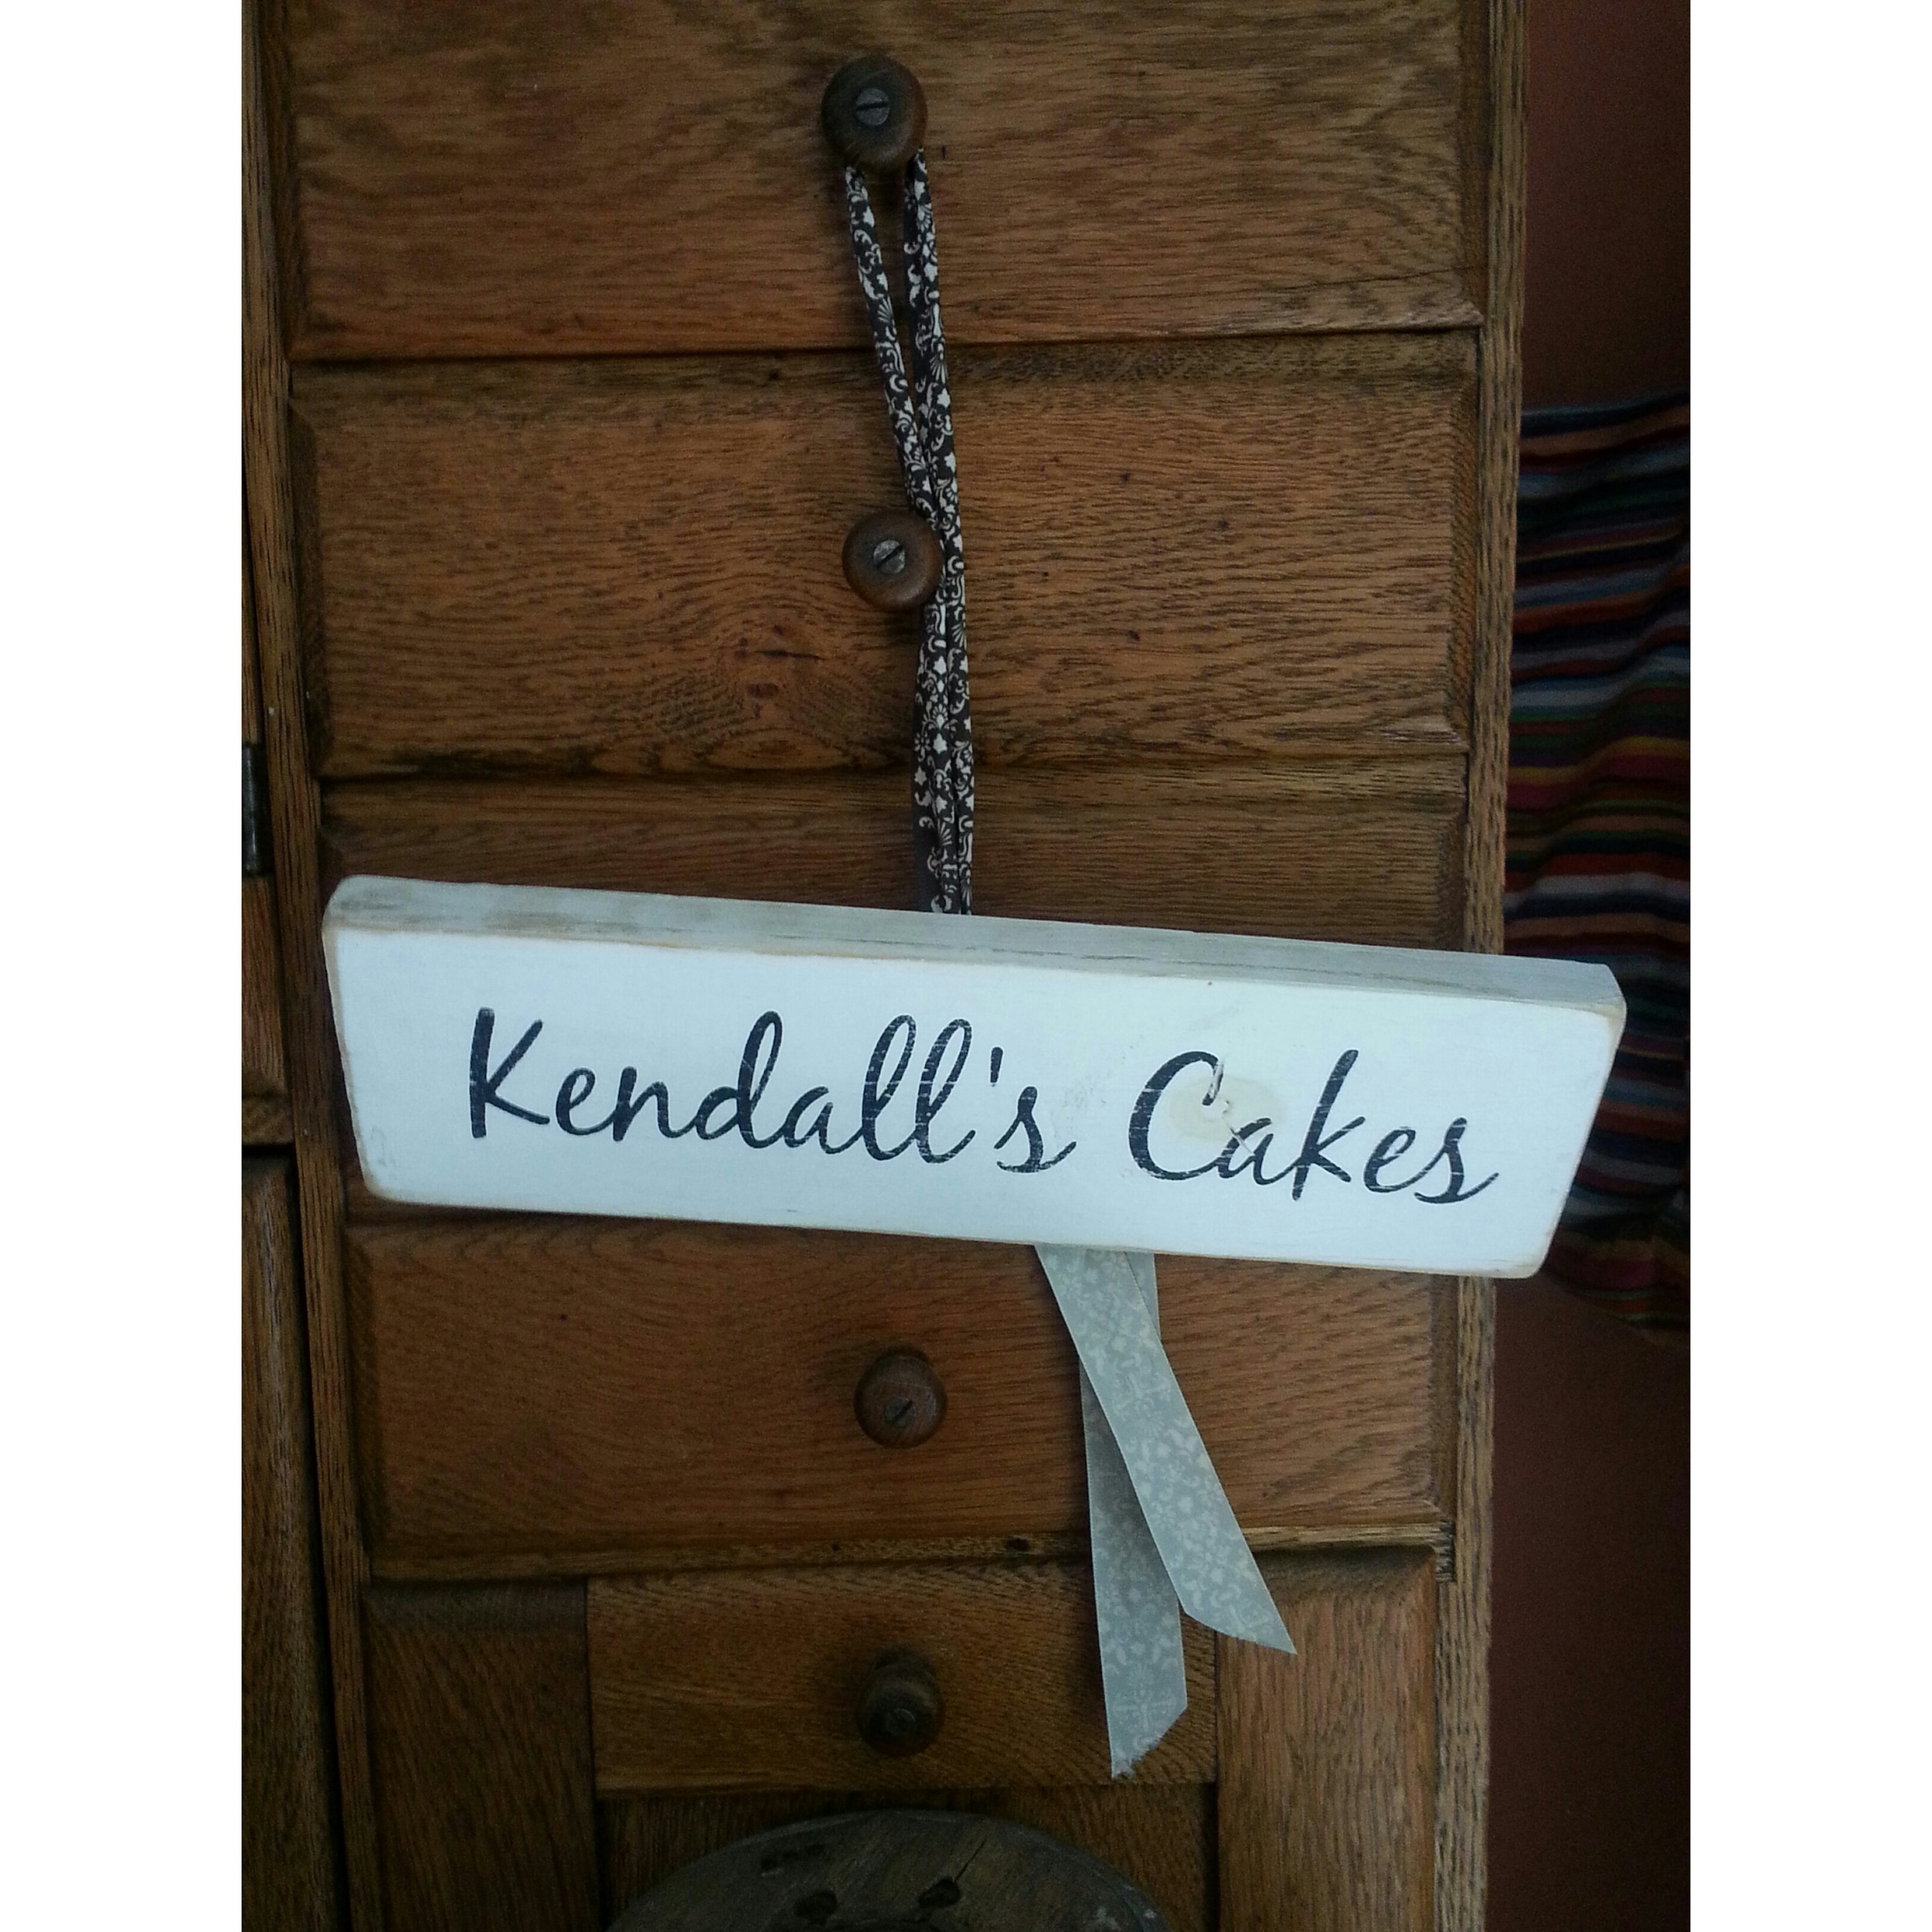 Kendall's Cakes